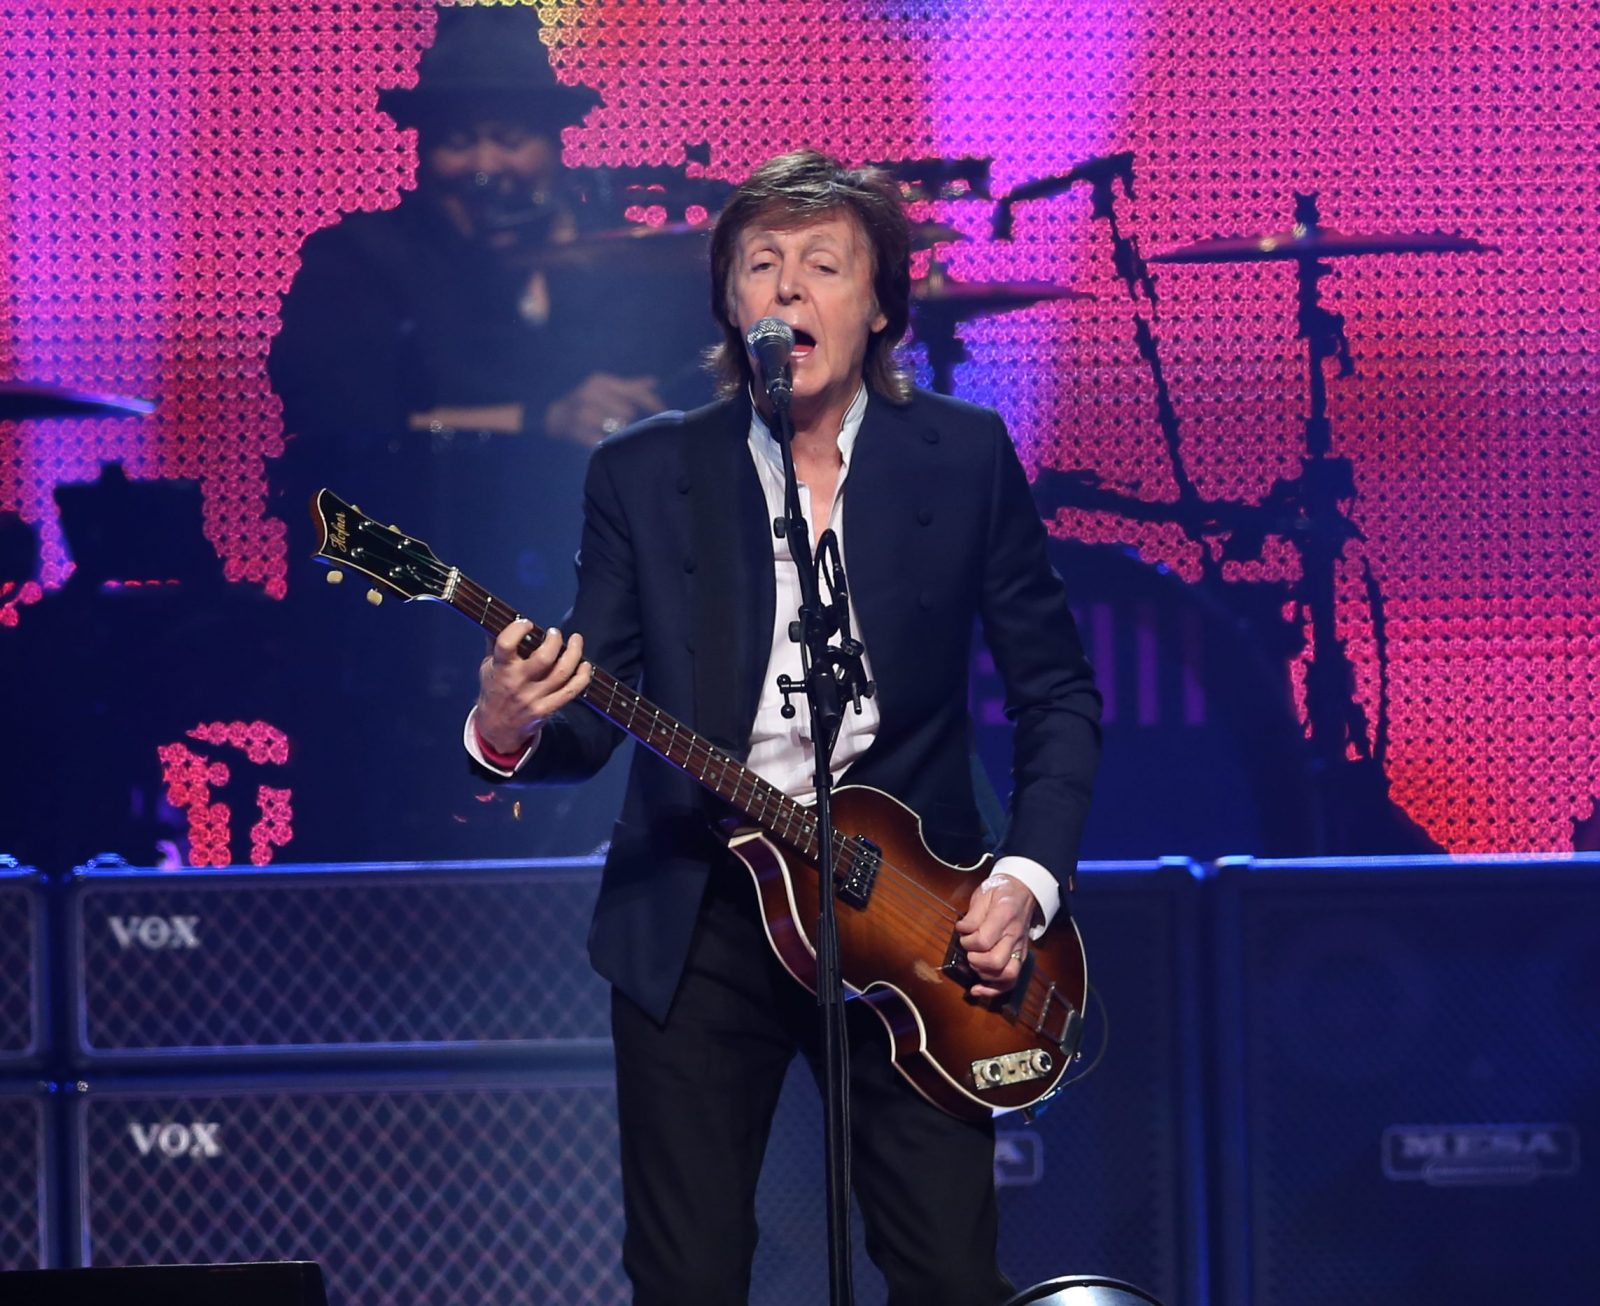 Paul McCartney performs at the last stop on his tour to a sold out crowd in 2015 at First Niagara Center. (Sharon Cantillon/Buffalo News)